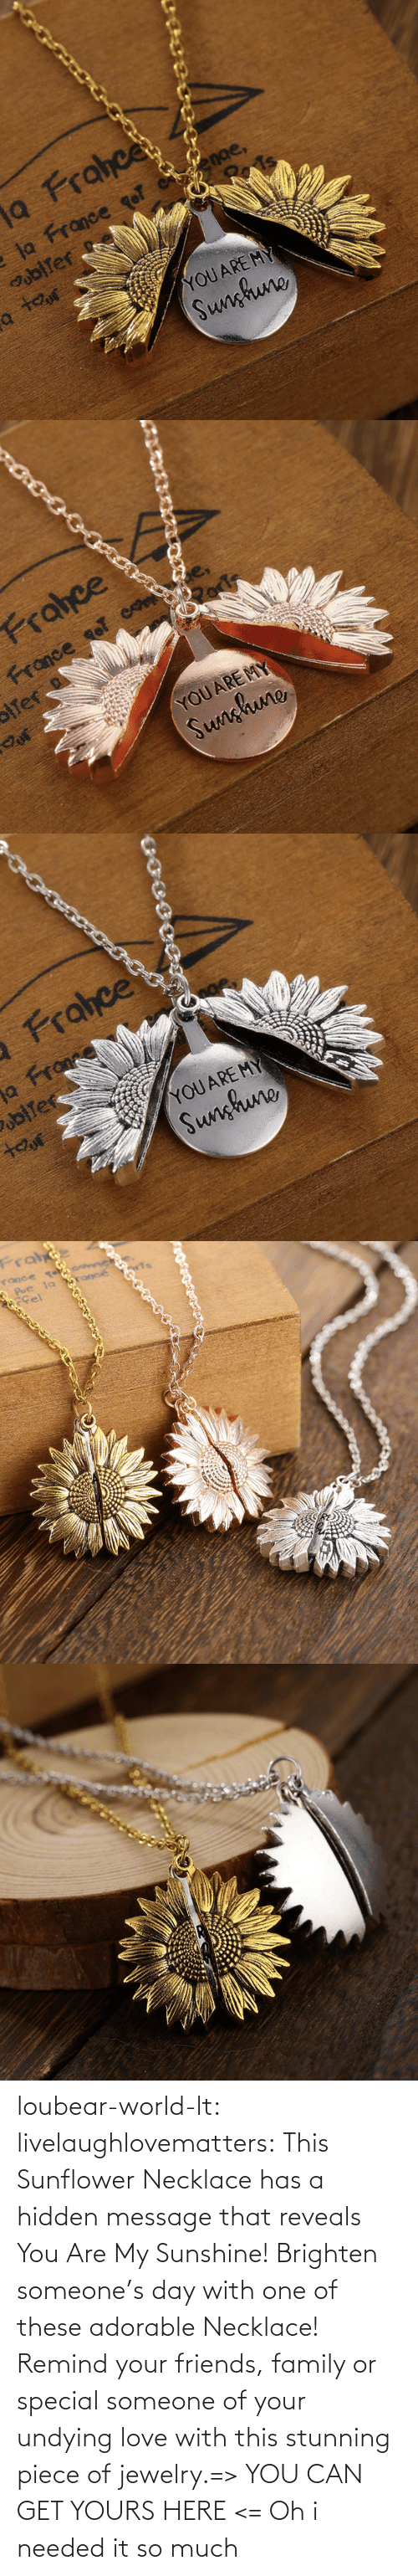 Oh: loubear-world-lt:  livelaughlovematters:  This Sunflower Necklace has a hidden message that reveals You Are My Sunshine! Brighten someone's day with one of these adorable Necklace! Remind your friends, family or special someone of your undying love with this stunning piece of jewelry.=> YOU CAN GET YOURS HERE <=   Oh i needed it so much